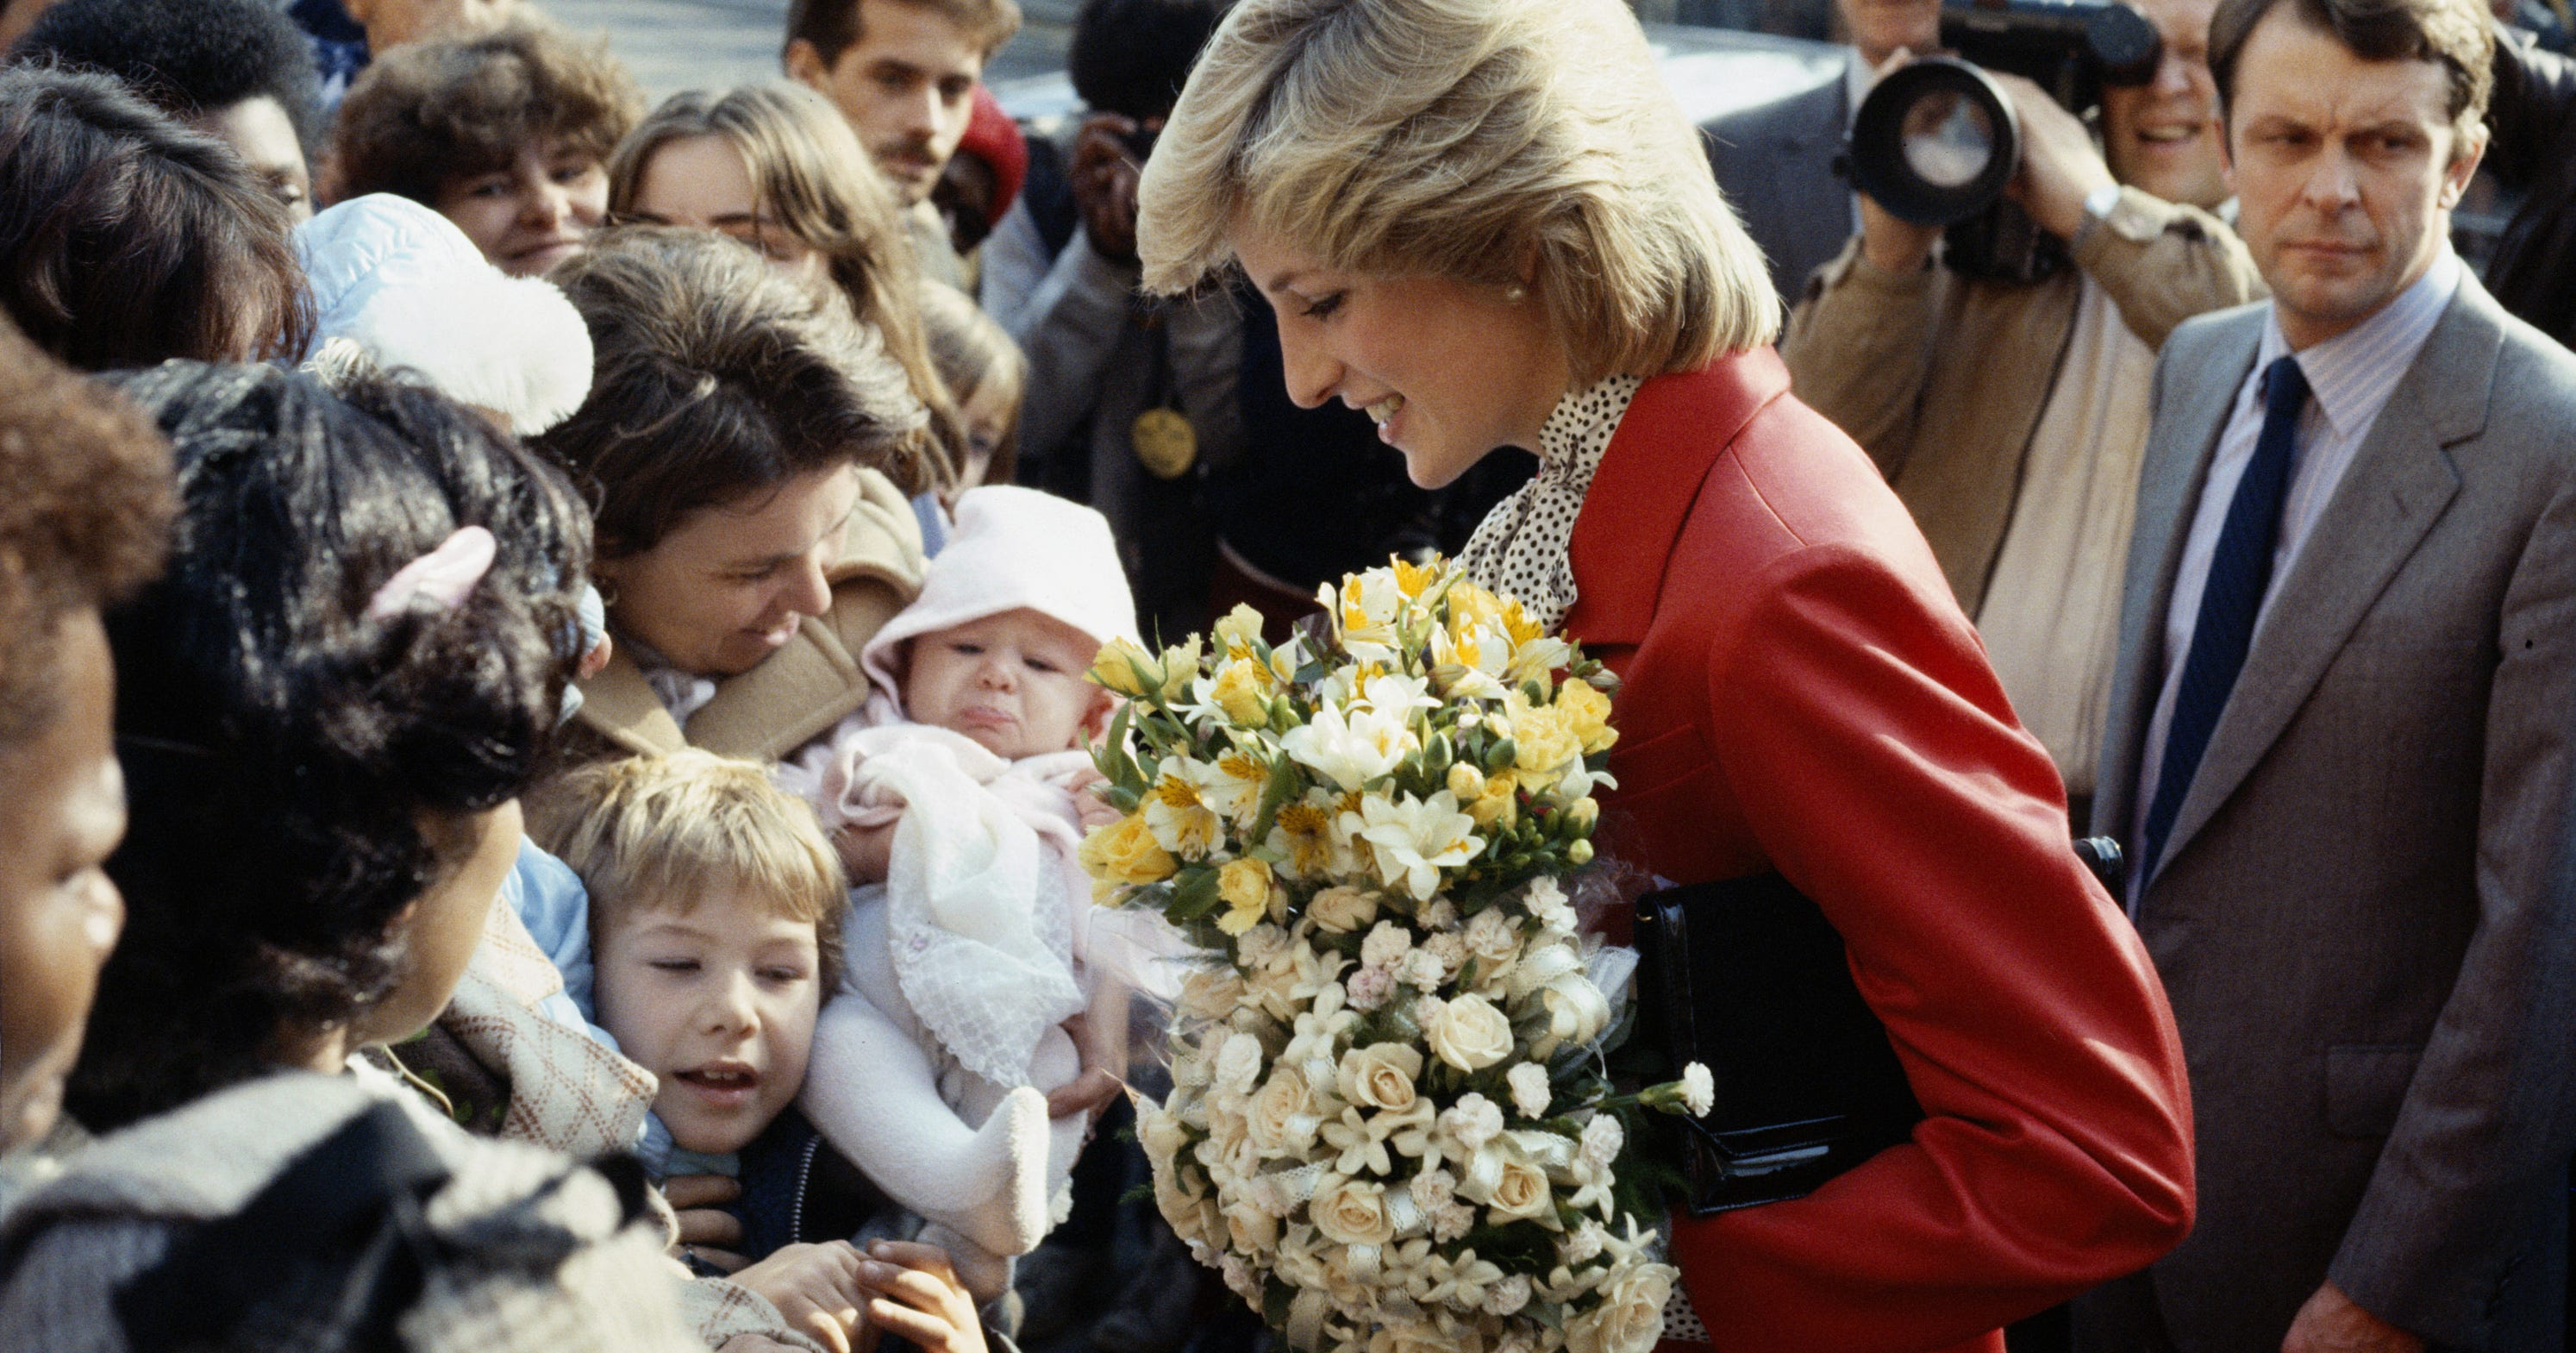 What Does Princess Diana Mean (If Anything) To Millennials?